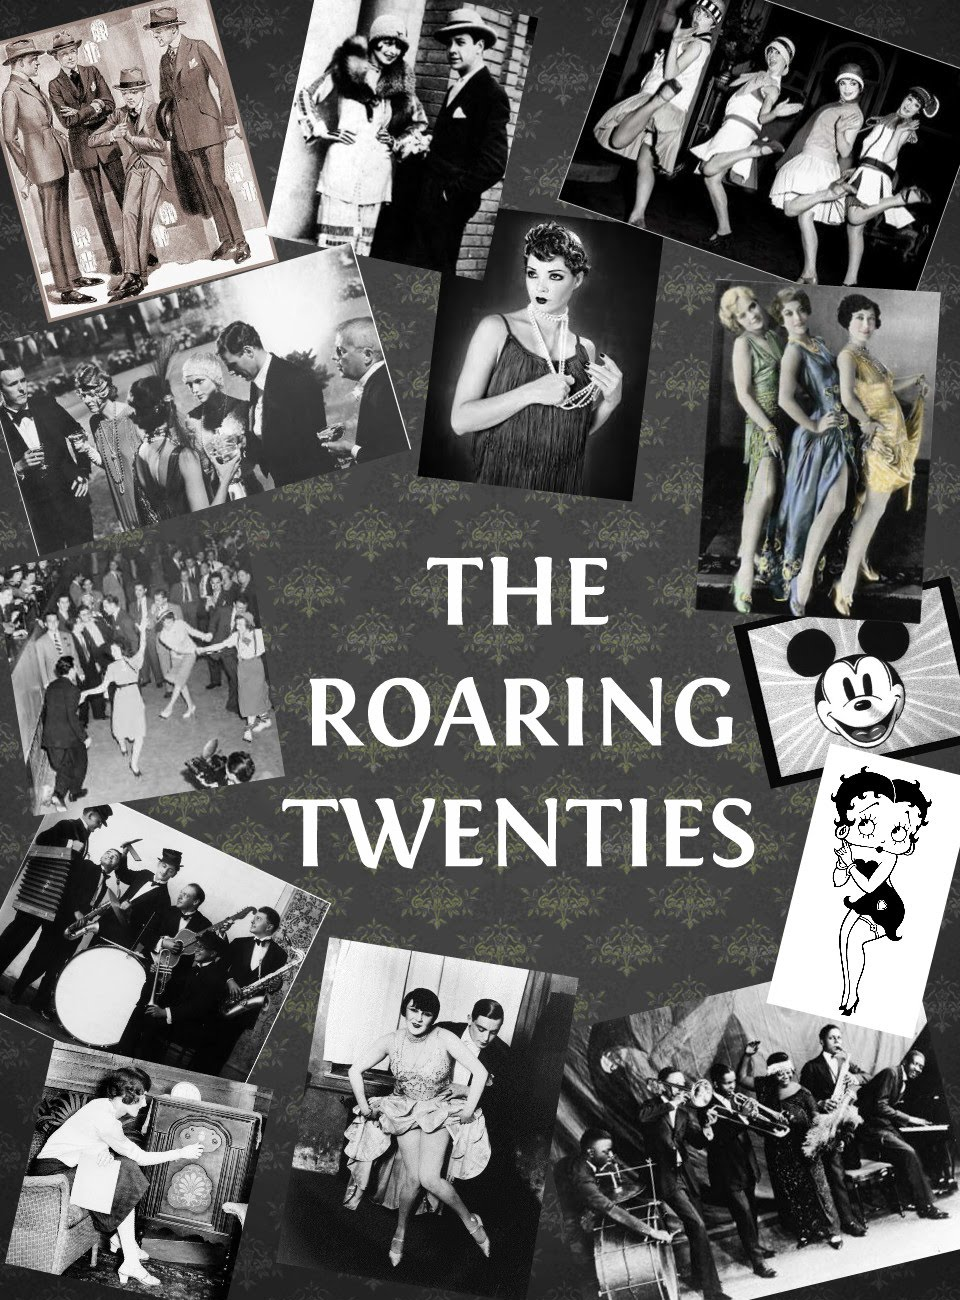 https://sites.google.com/a/friscoisd.org/ihs_apush/_/rsrc/1491171893624/home/period-7---1890-1945/the-roaring-twenties-the-jazz-age/roaring-twenties-source.jpg